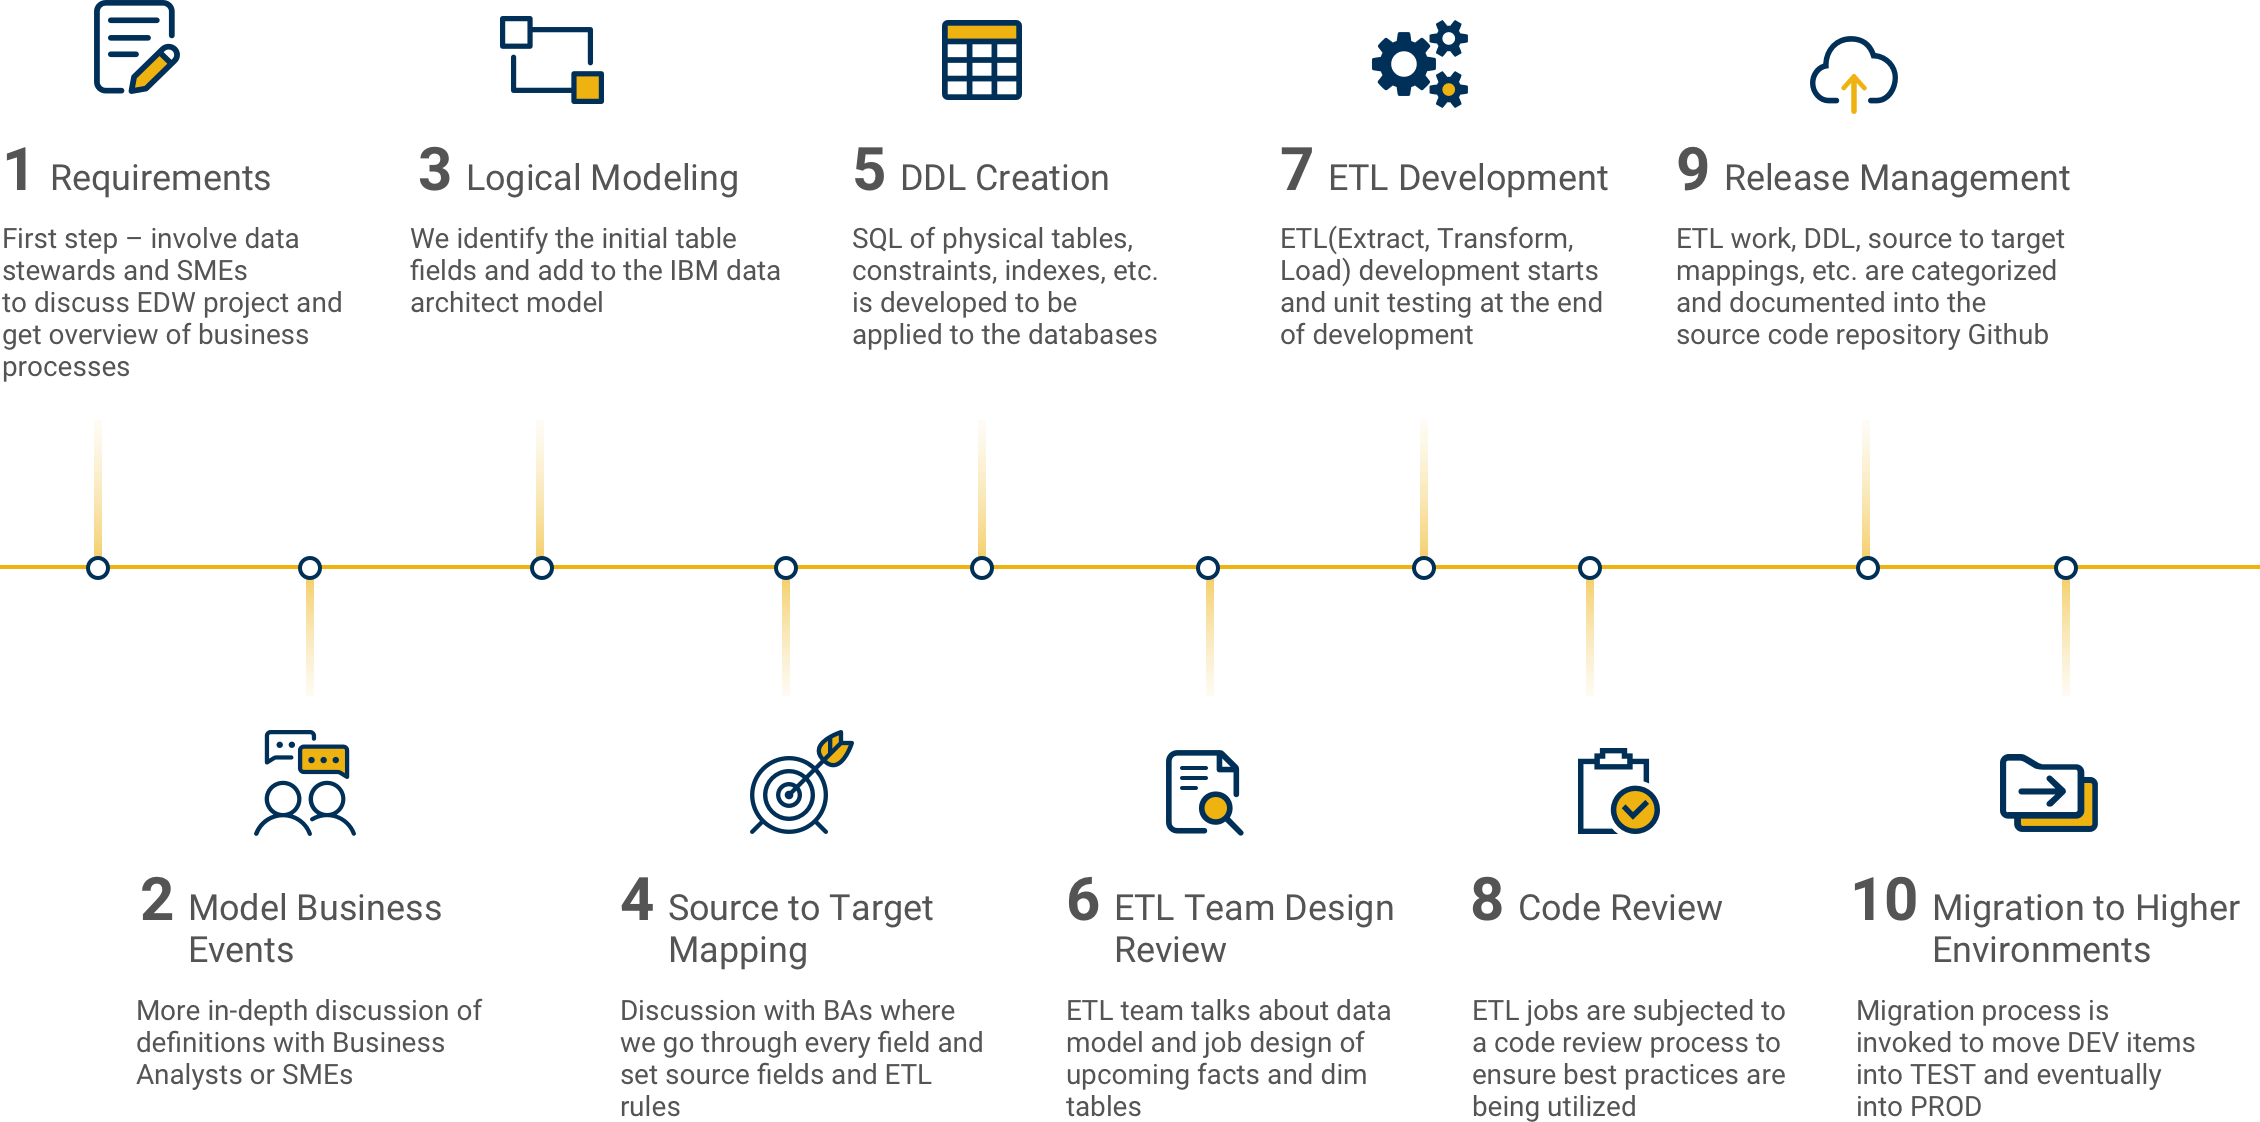 Illustration of 10-stage software development methodology: including: requirements, model business events, logical modeling, source to target mapping,  DDL creation, ETL team design review, ETL development, code review, release management and migration to higher environments